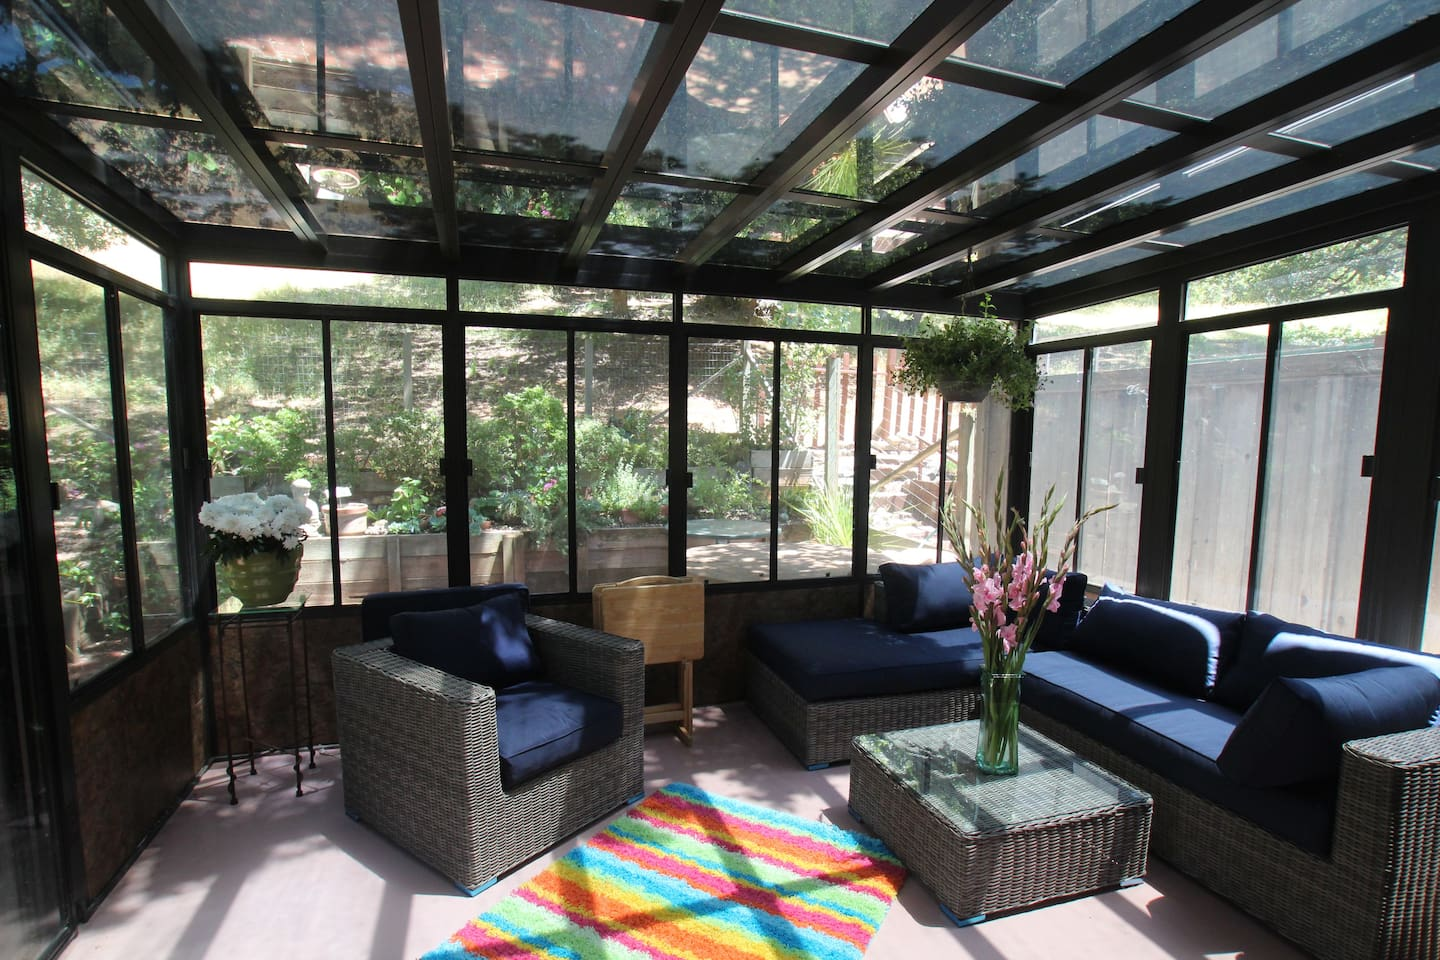 Gardenview Townhome, with mainfloor Sunroom off the kitchen especially nice April-October